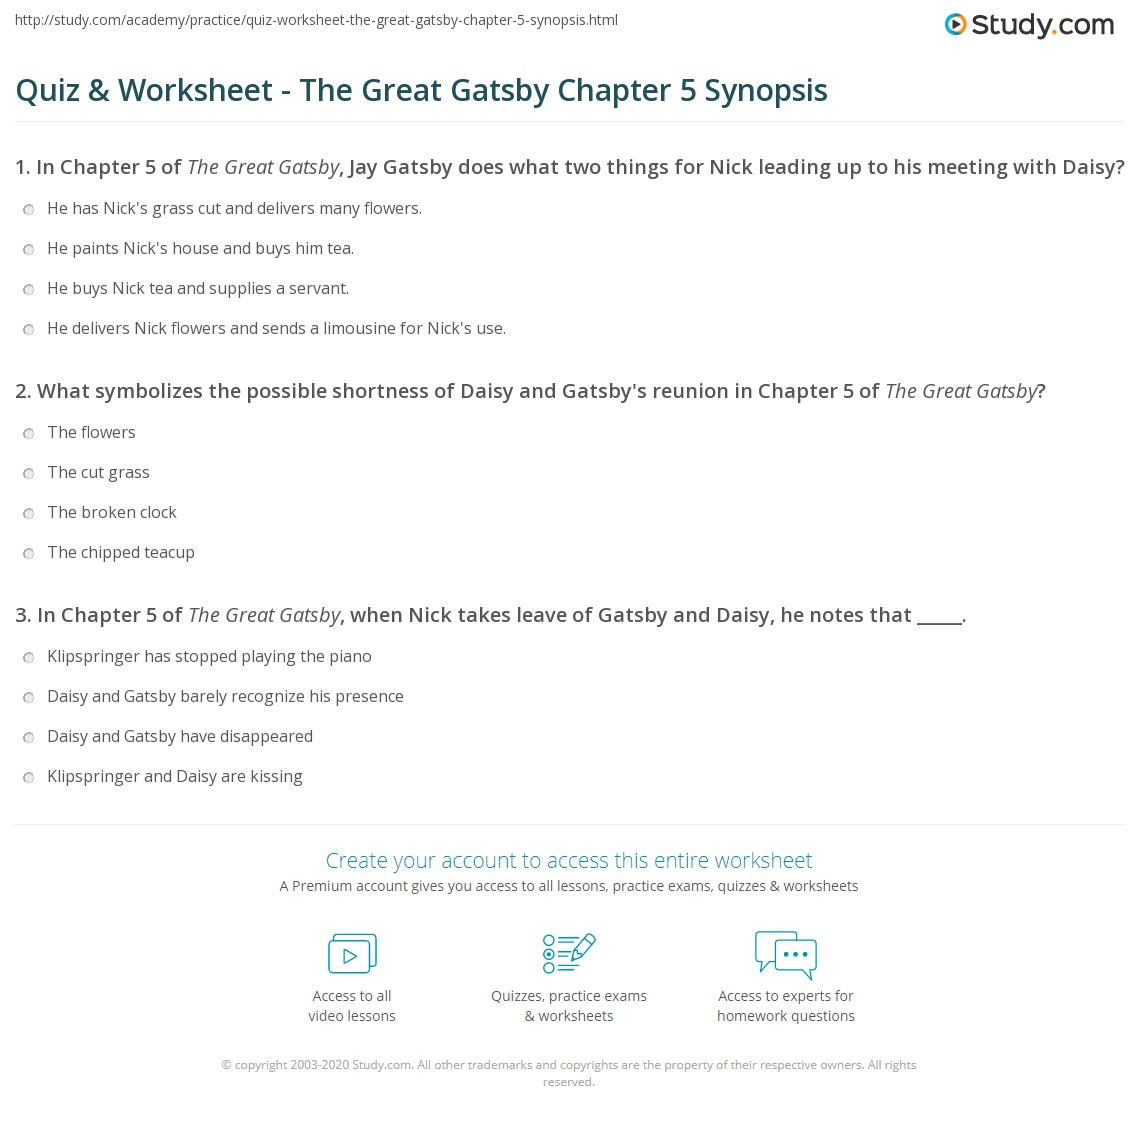 essay about the great gatsby great gatsby essay ideas essays  quiz worksheet the great gatsby chapter synopsis com print the great gatsby chapter 5 summary worksheet